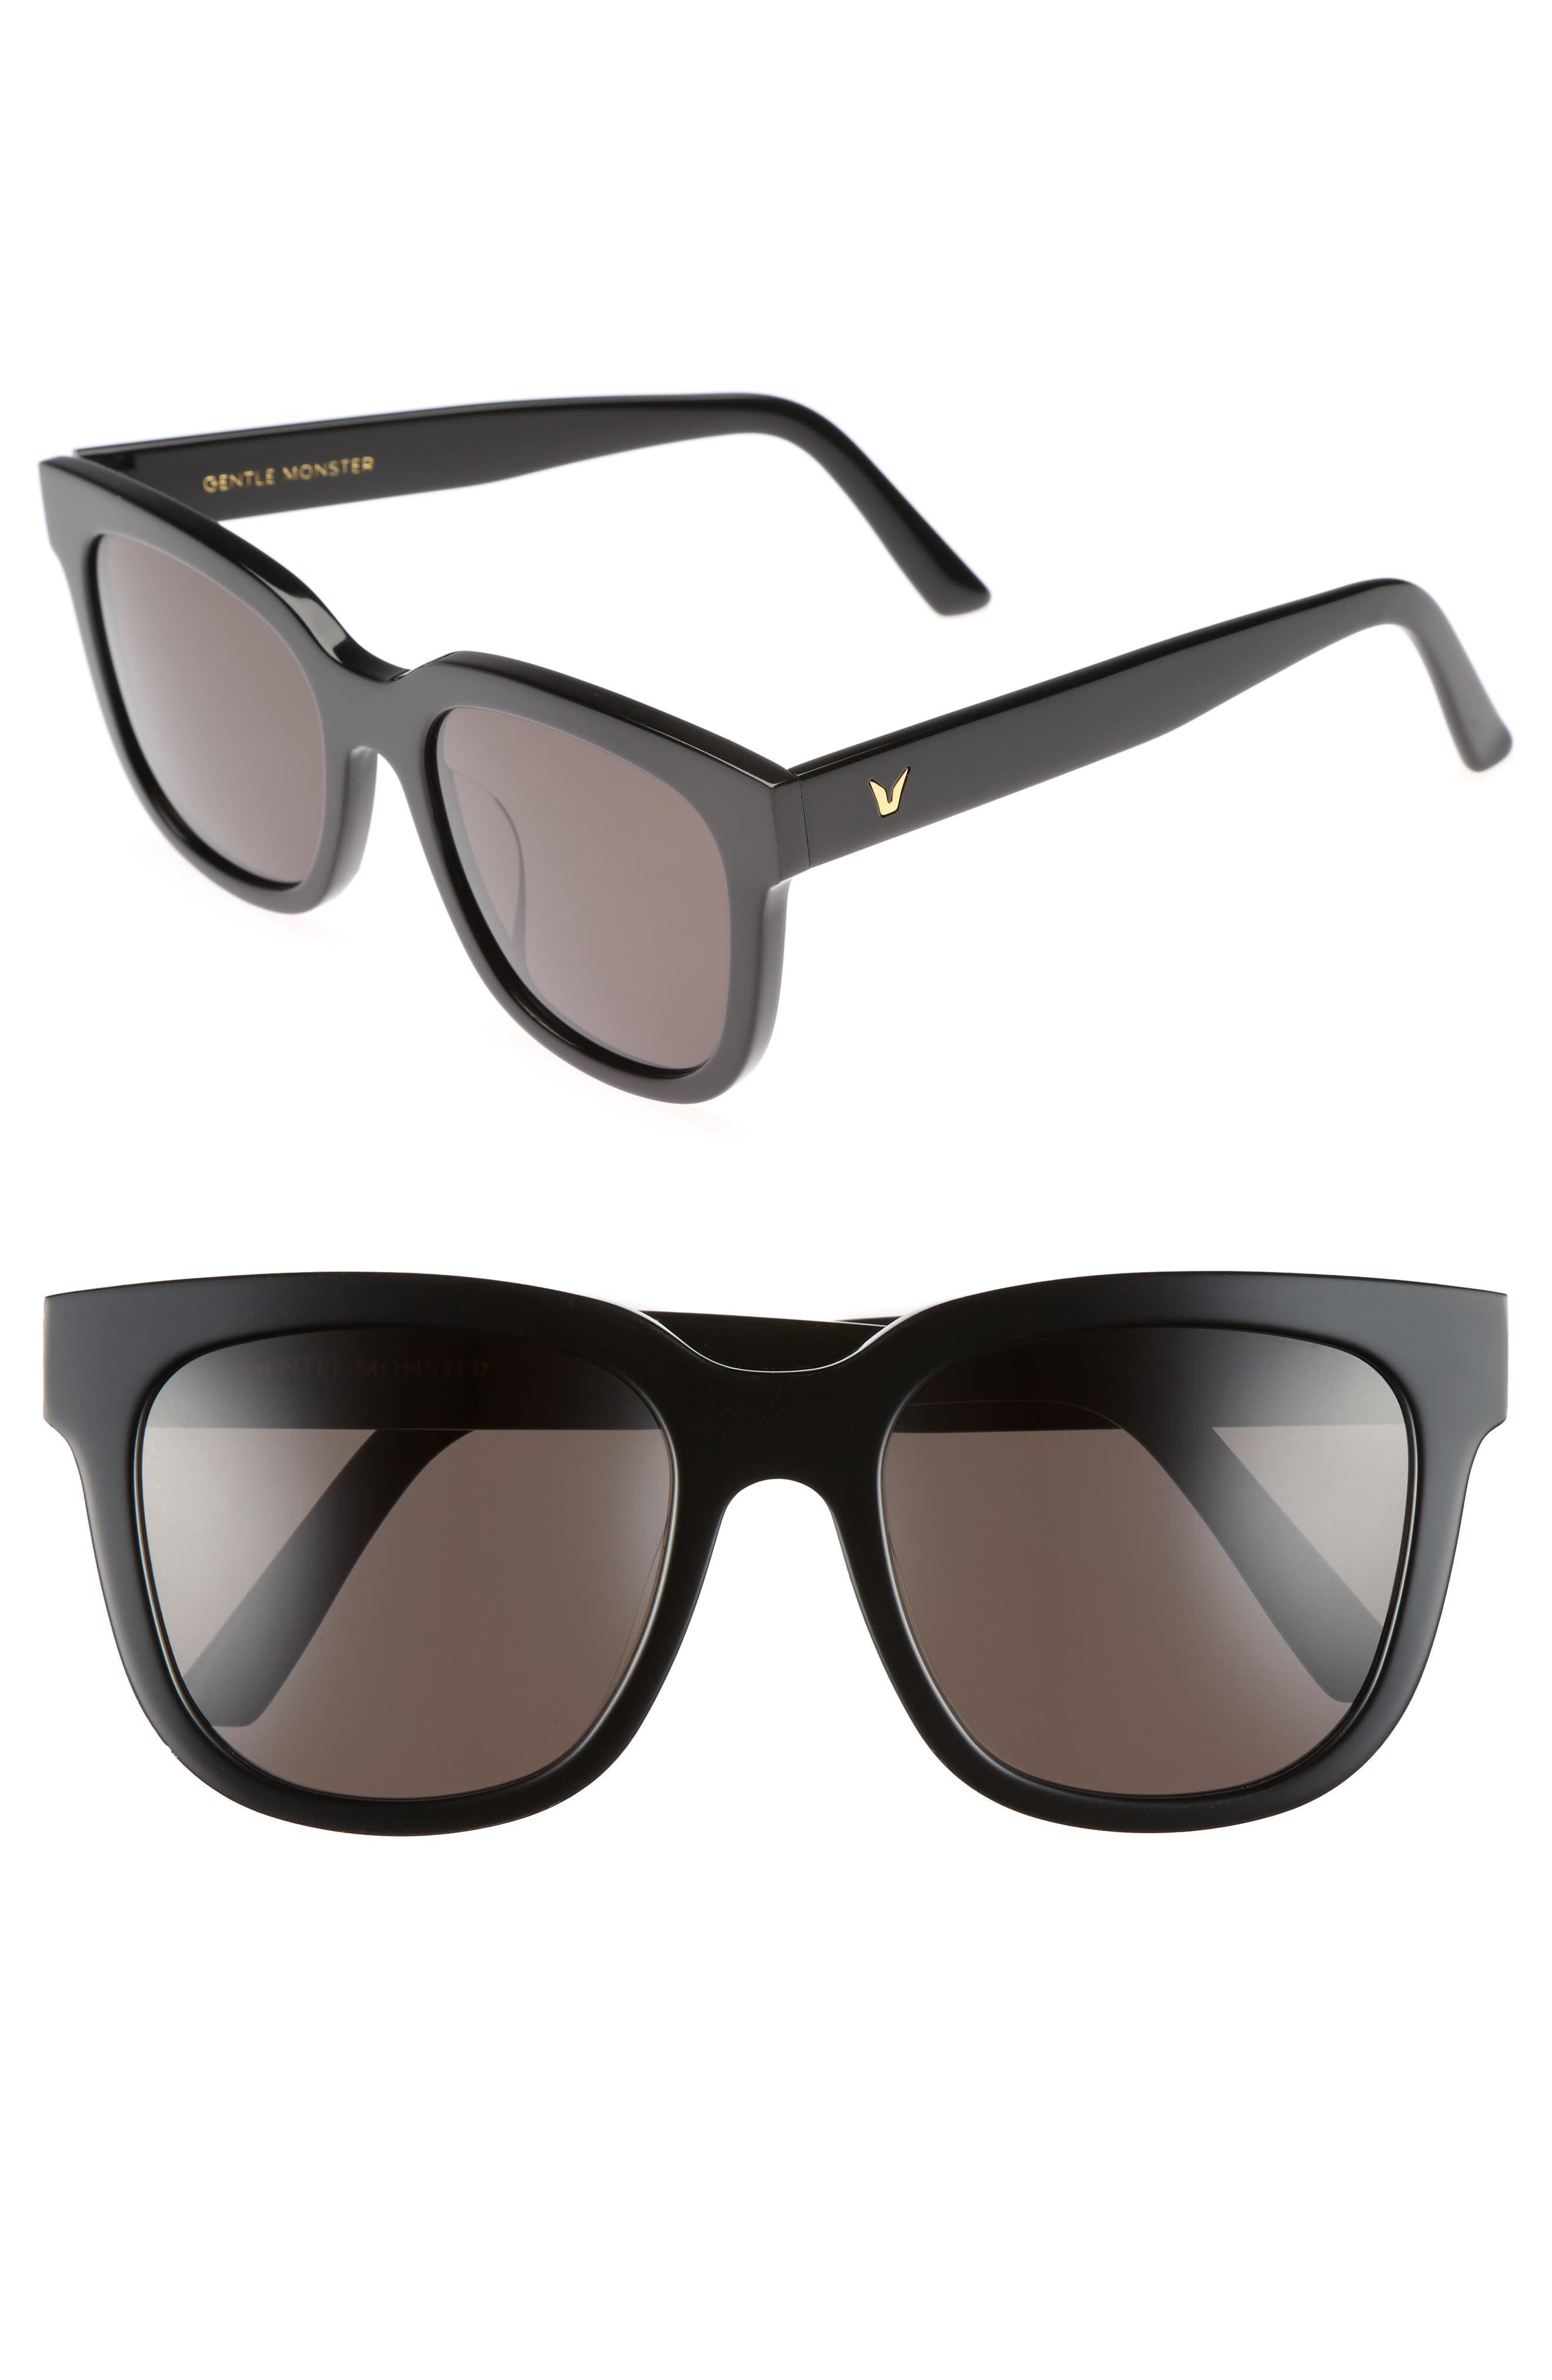 Salt 55mm Sunglasses,                         Main,                         color, 001